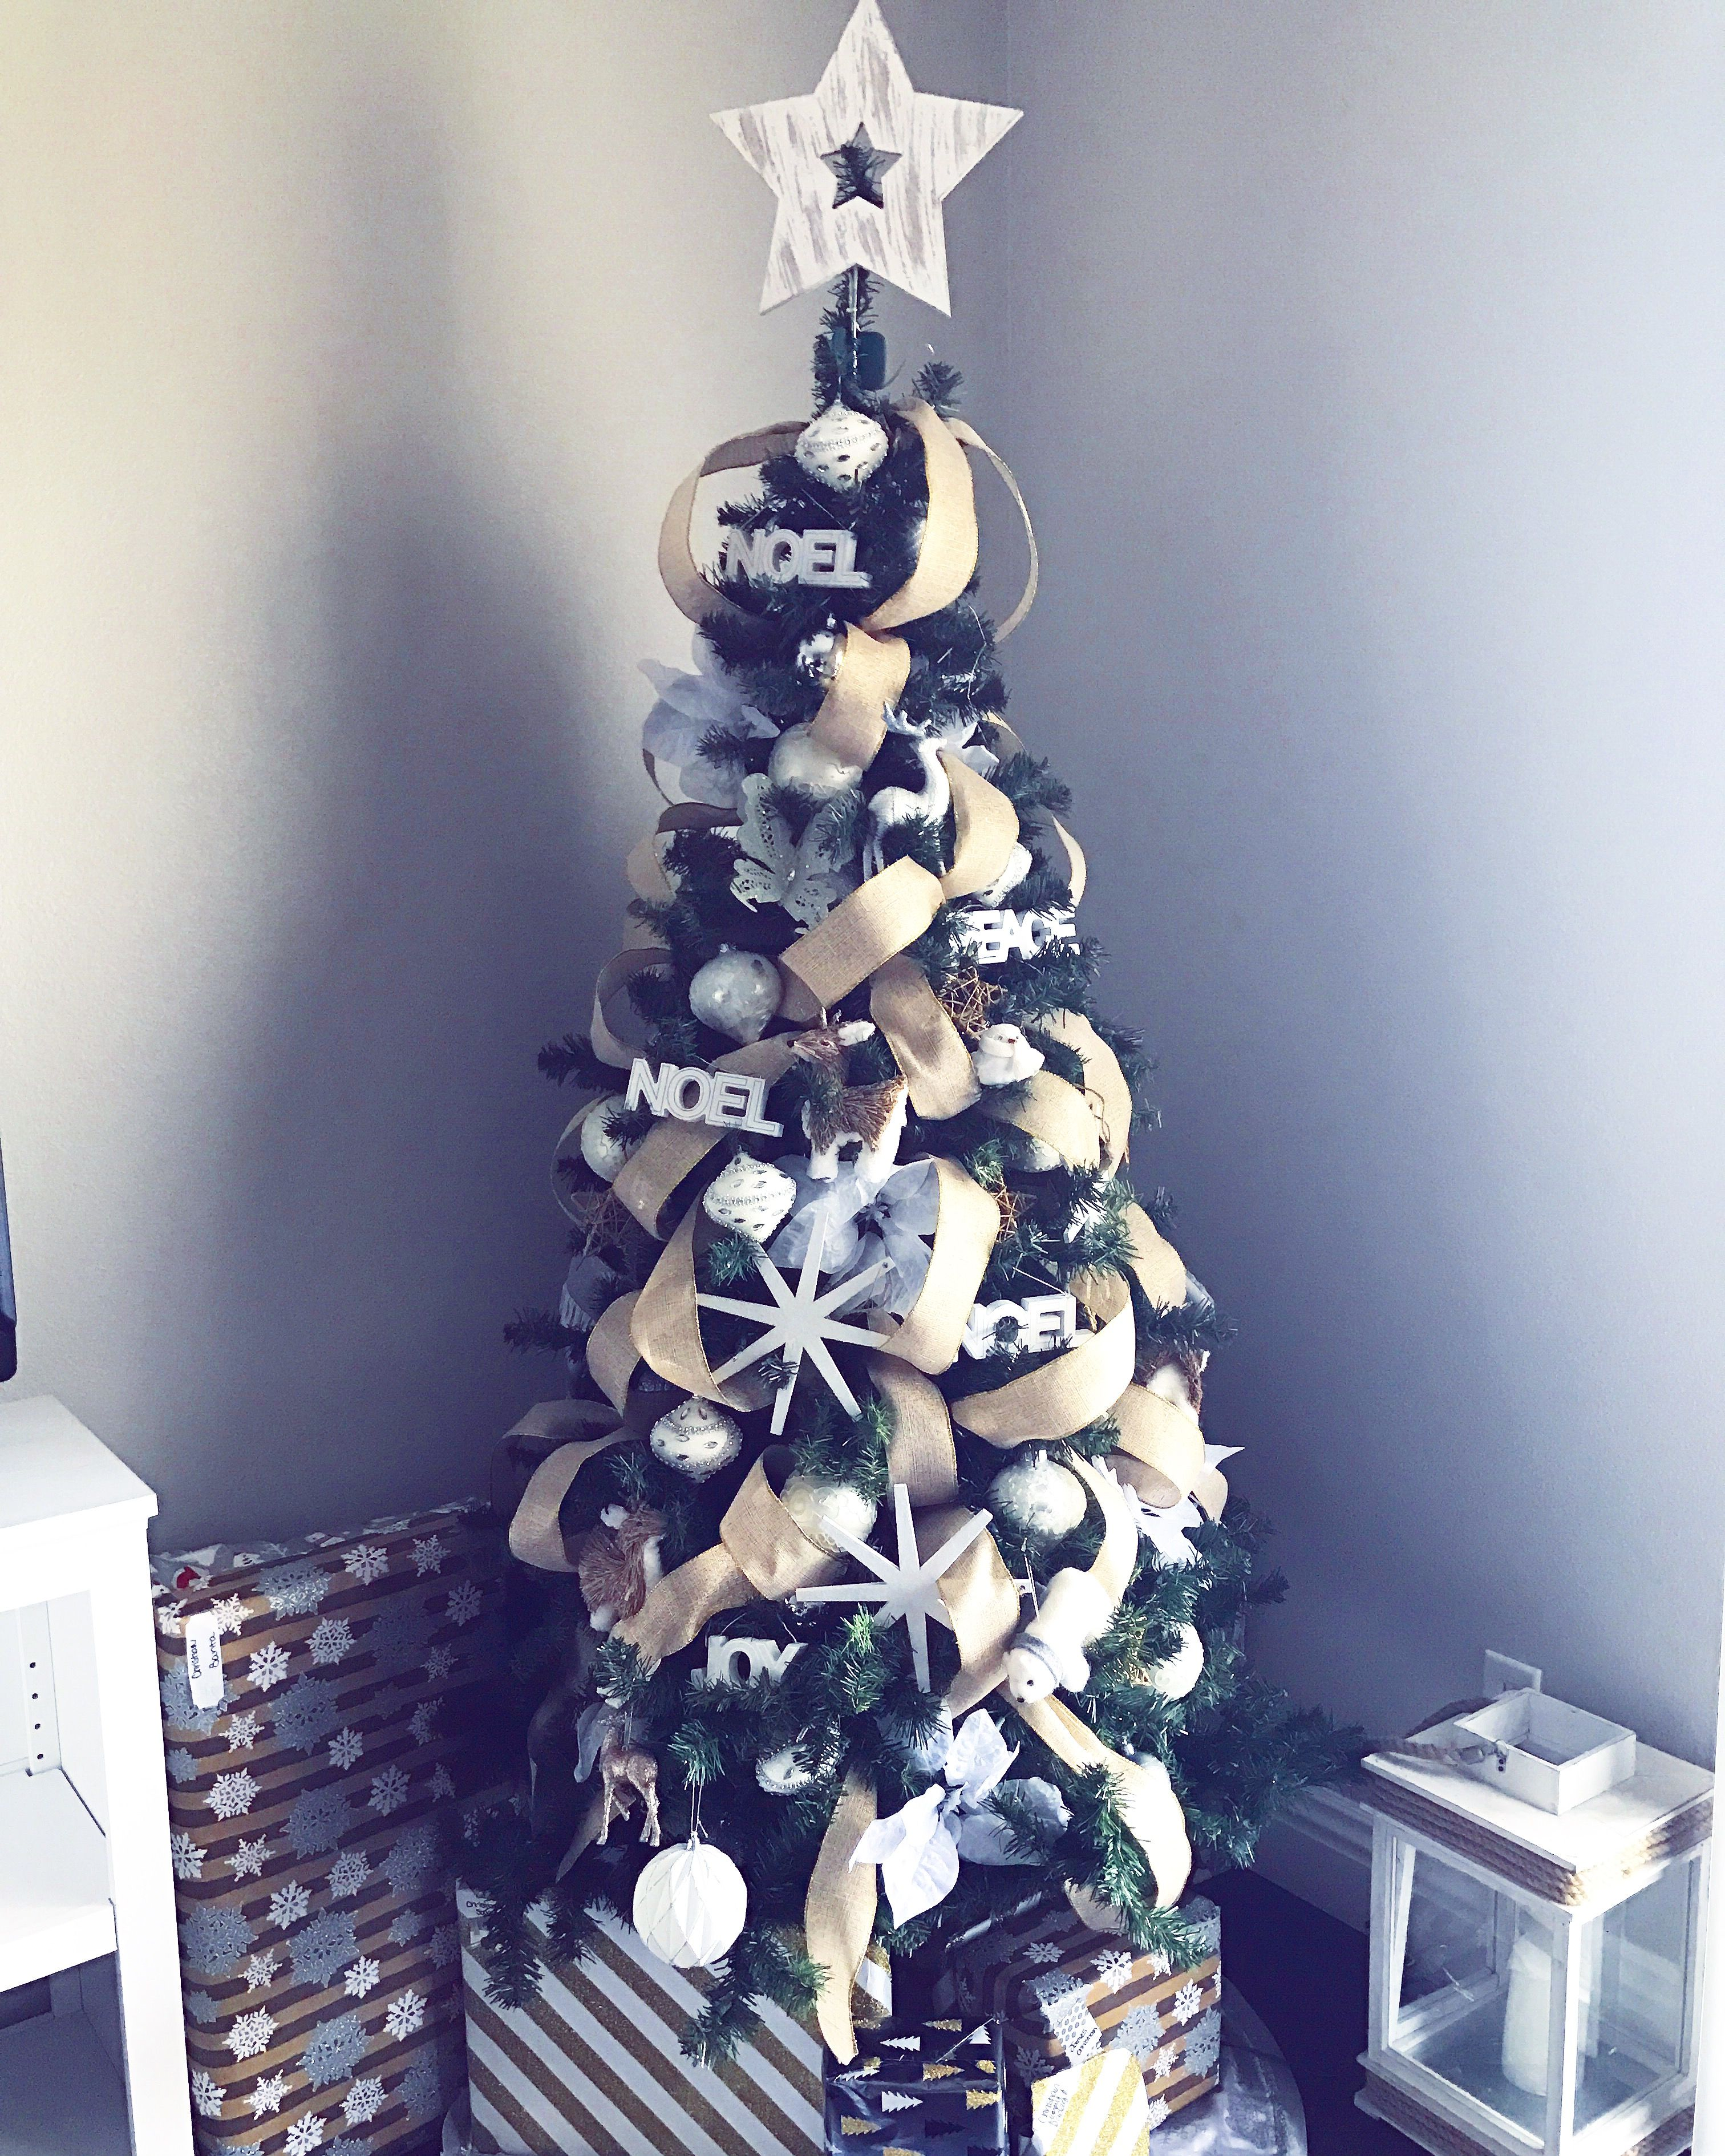 My Rustic Glam Christmas Tree. Featuring burlap ribbon and white wash wood.  White and silver ornaments. Winter wonderland